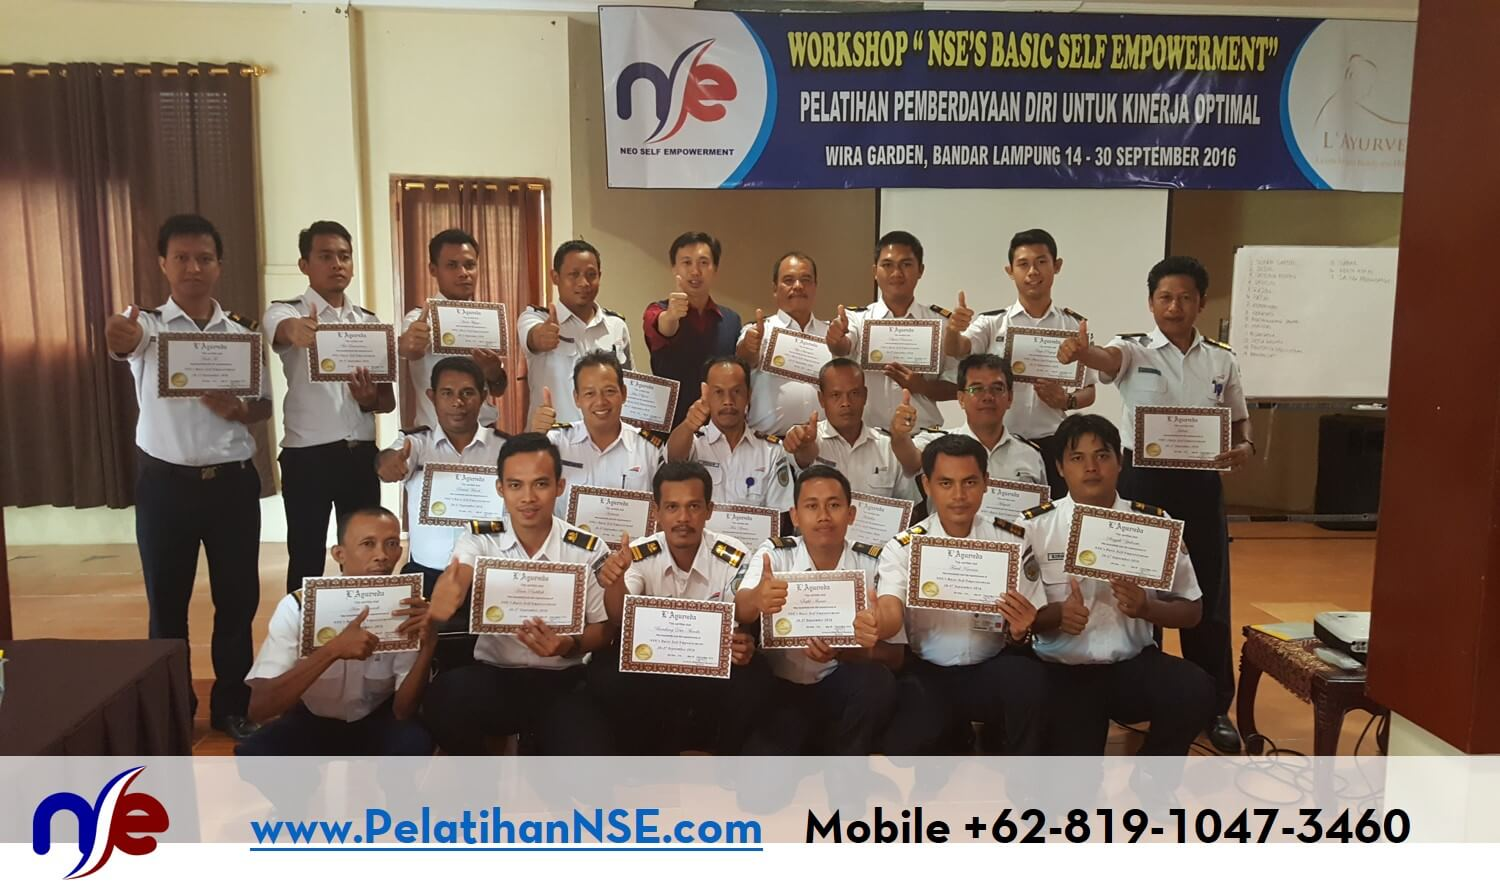 Basic Self Empowerment PT. KAI (Persero) 26-27 September 2016 - Foto Bersama